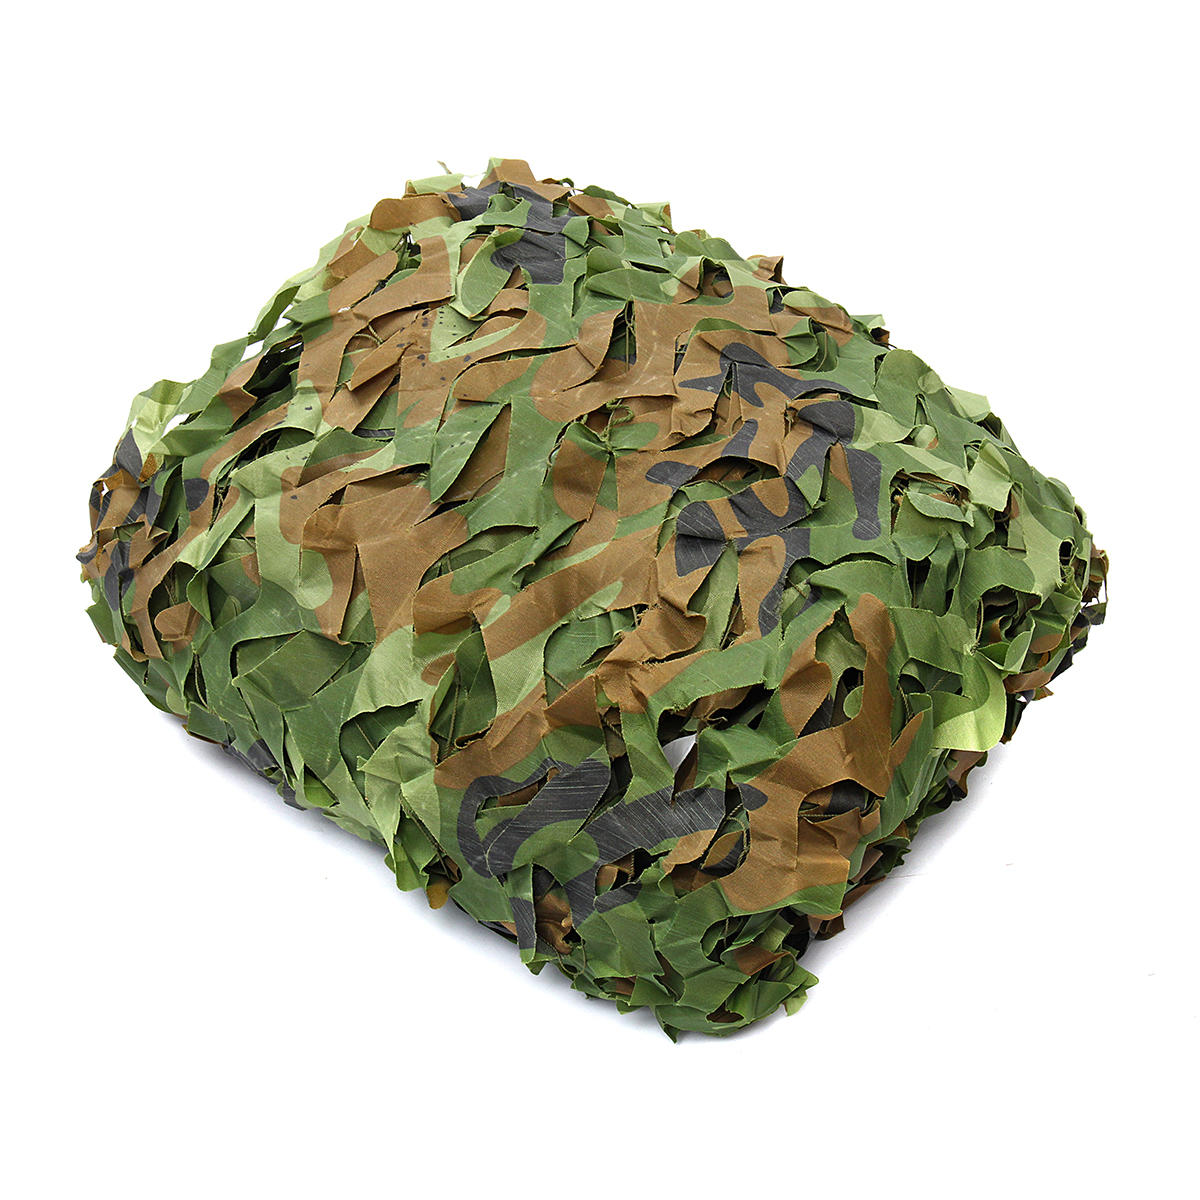 1.5mX6m Jungle Camo Netting Camouflage Net for Car Cover Camping Woodland Military Hunting